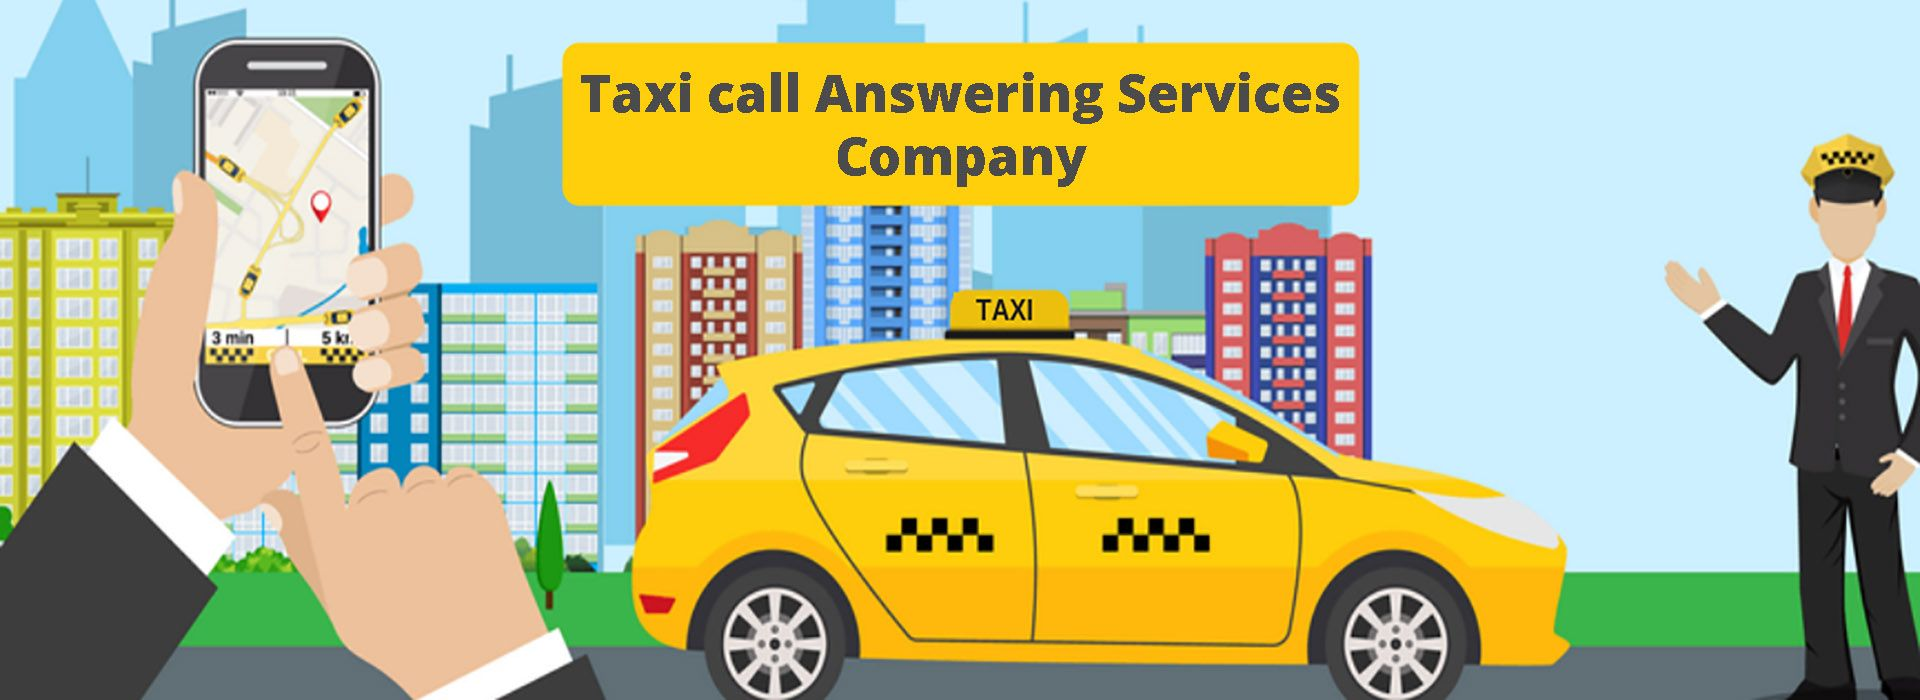 Taxi Call Answering Service In 2020 Taxi Dubai City Guide